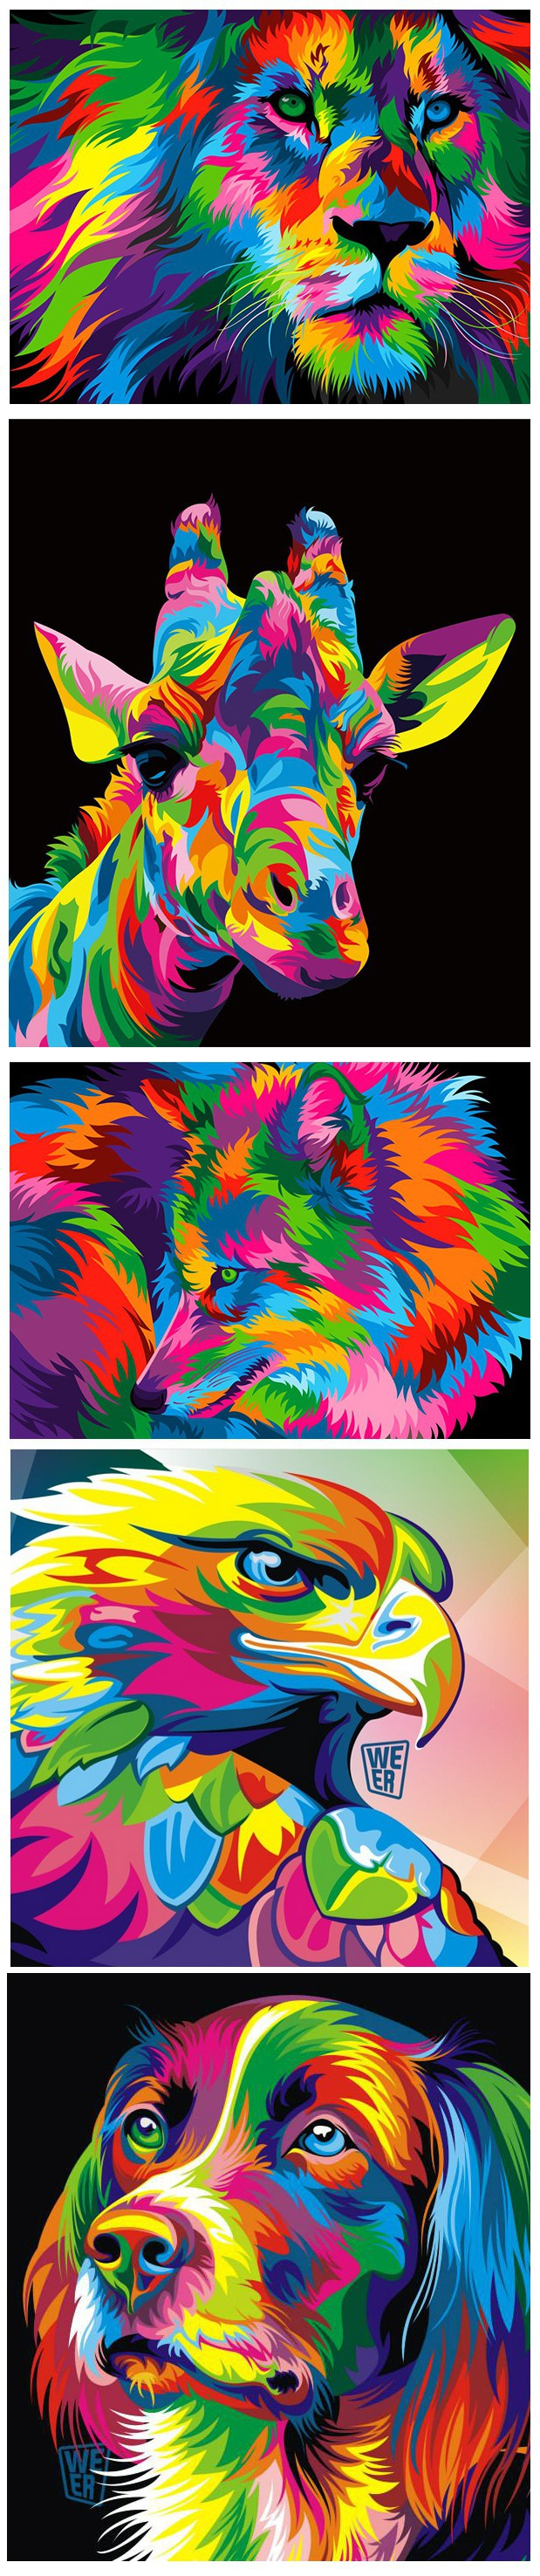 Colorful animal vector illustrations made in CorelDRAW